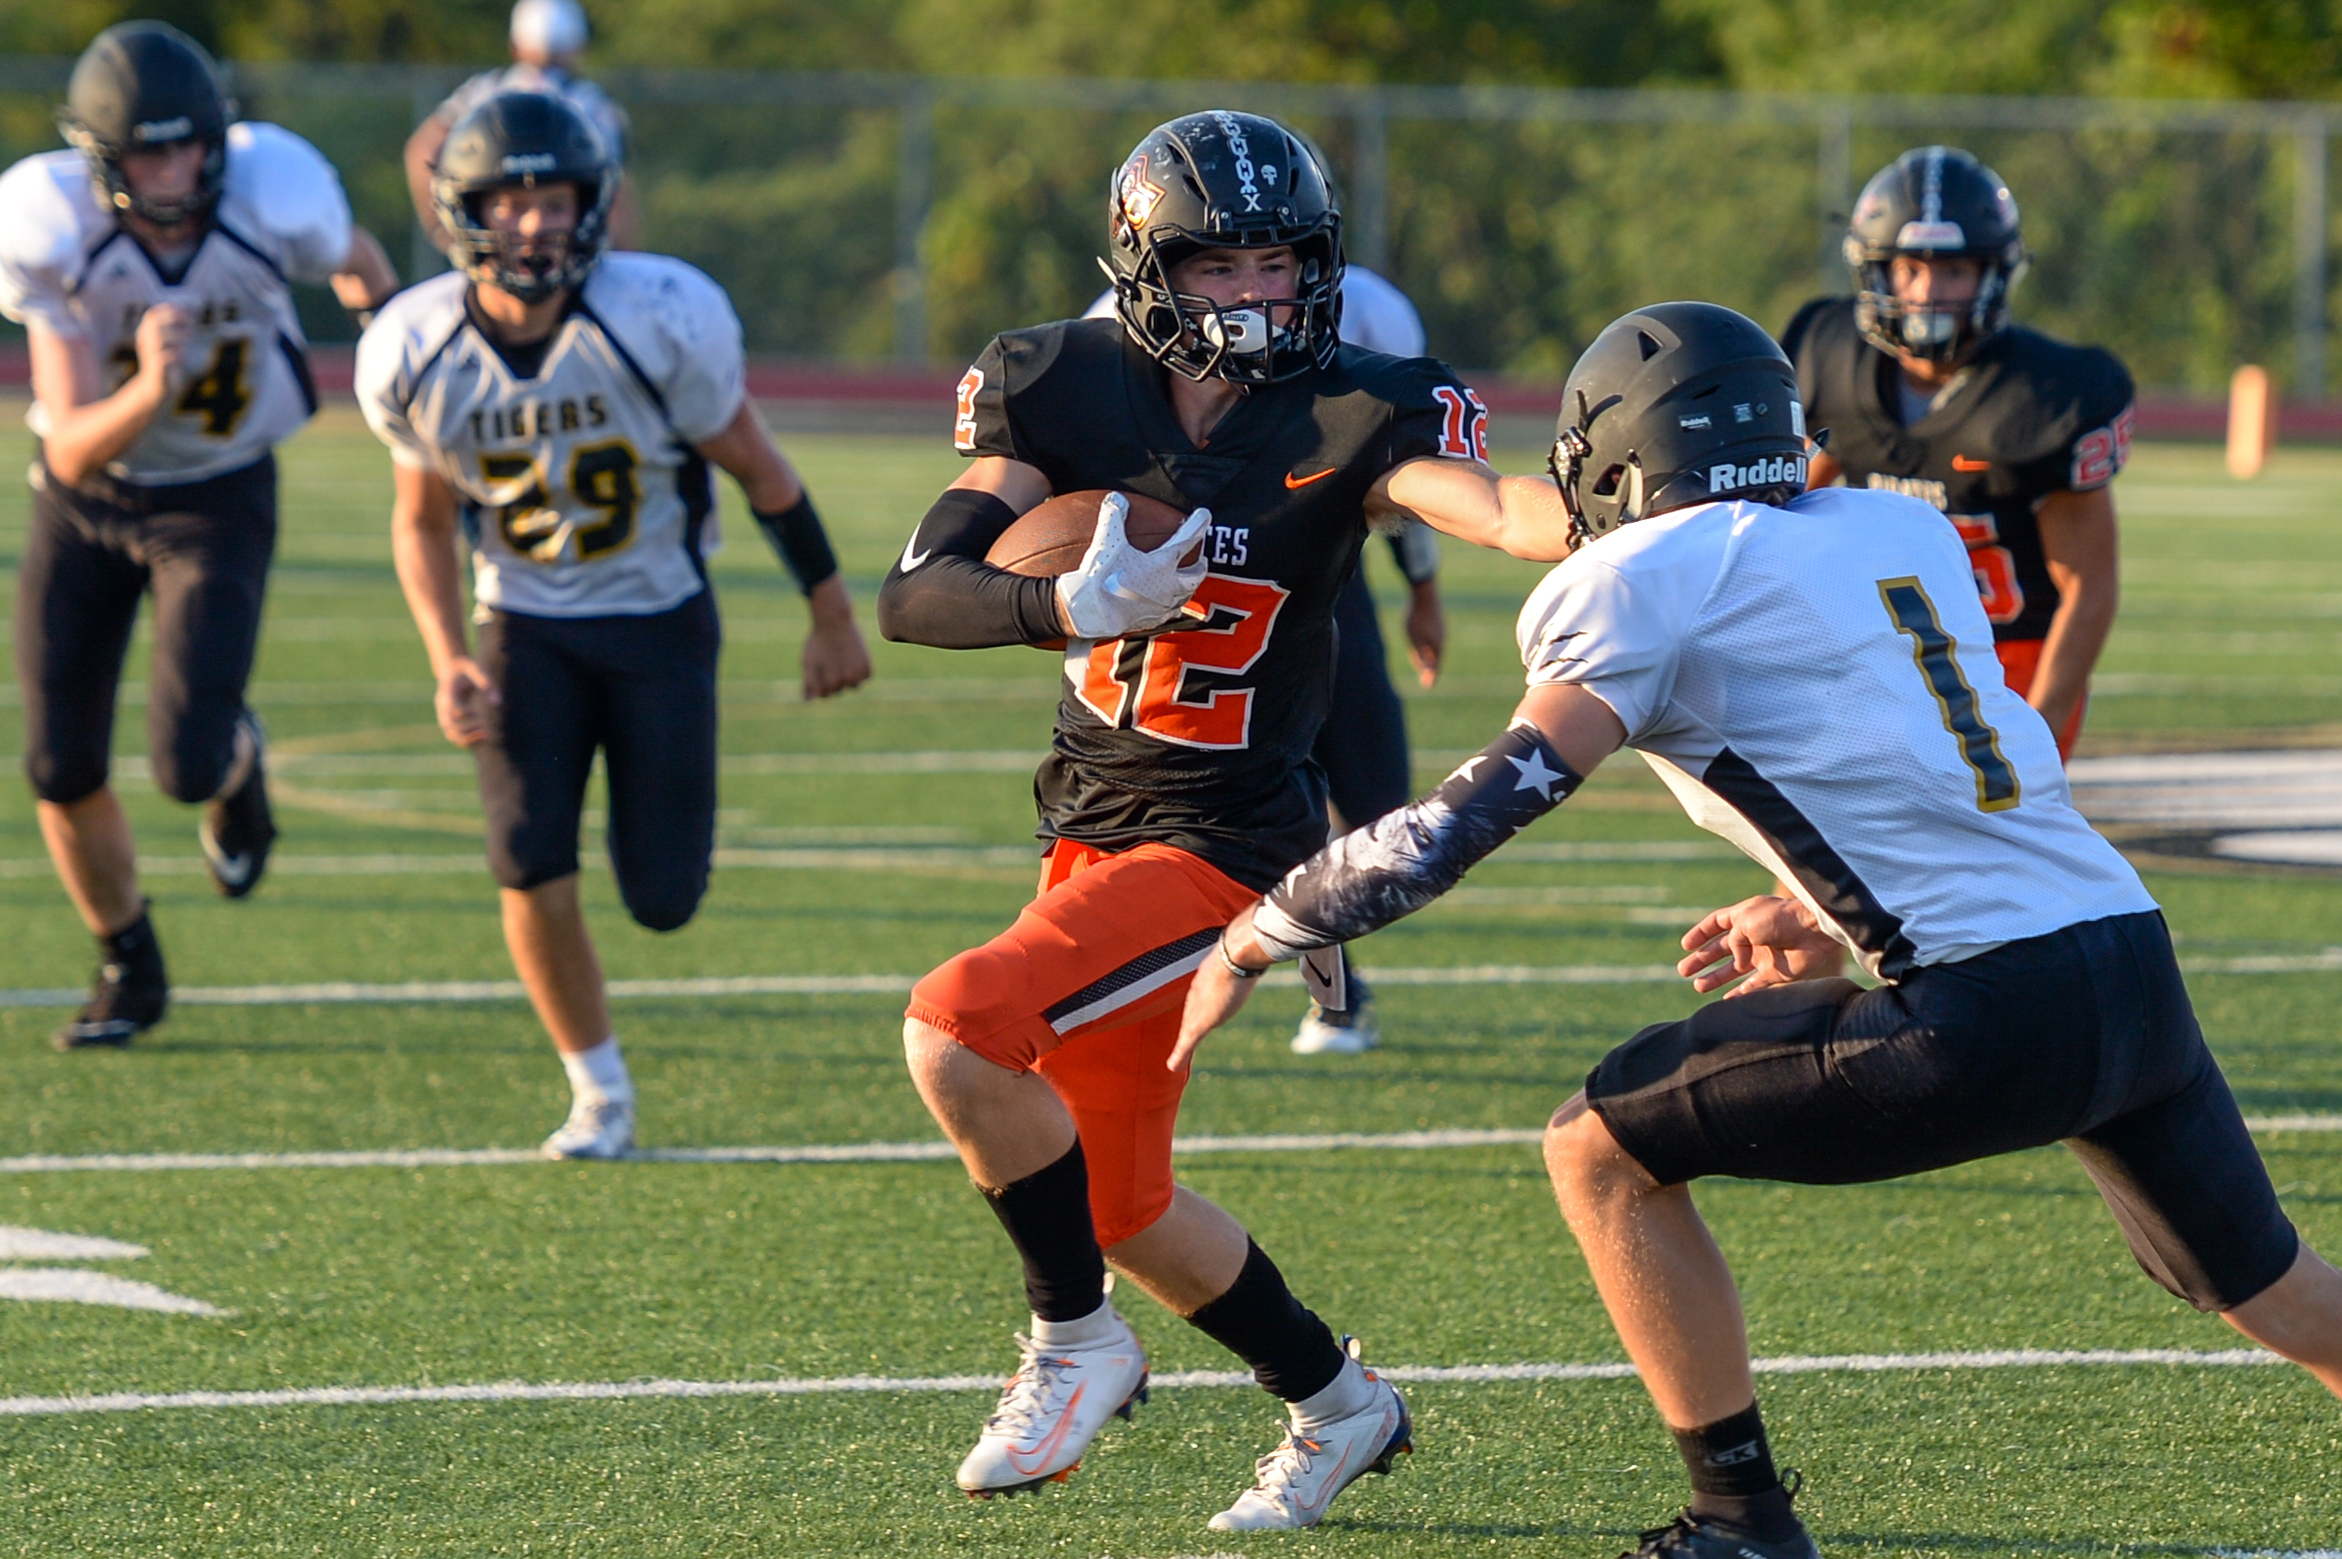 TODD NUGENT/Nugent Photography  Platte County's Cam Schieb stiff-arms an Excelsior Springs defender during a jamboree on Friday, Aug. 23 at Exclesior Springs High School.